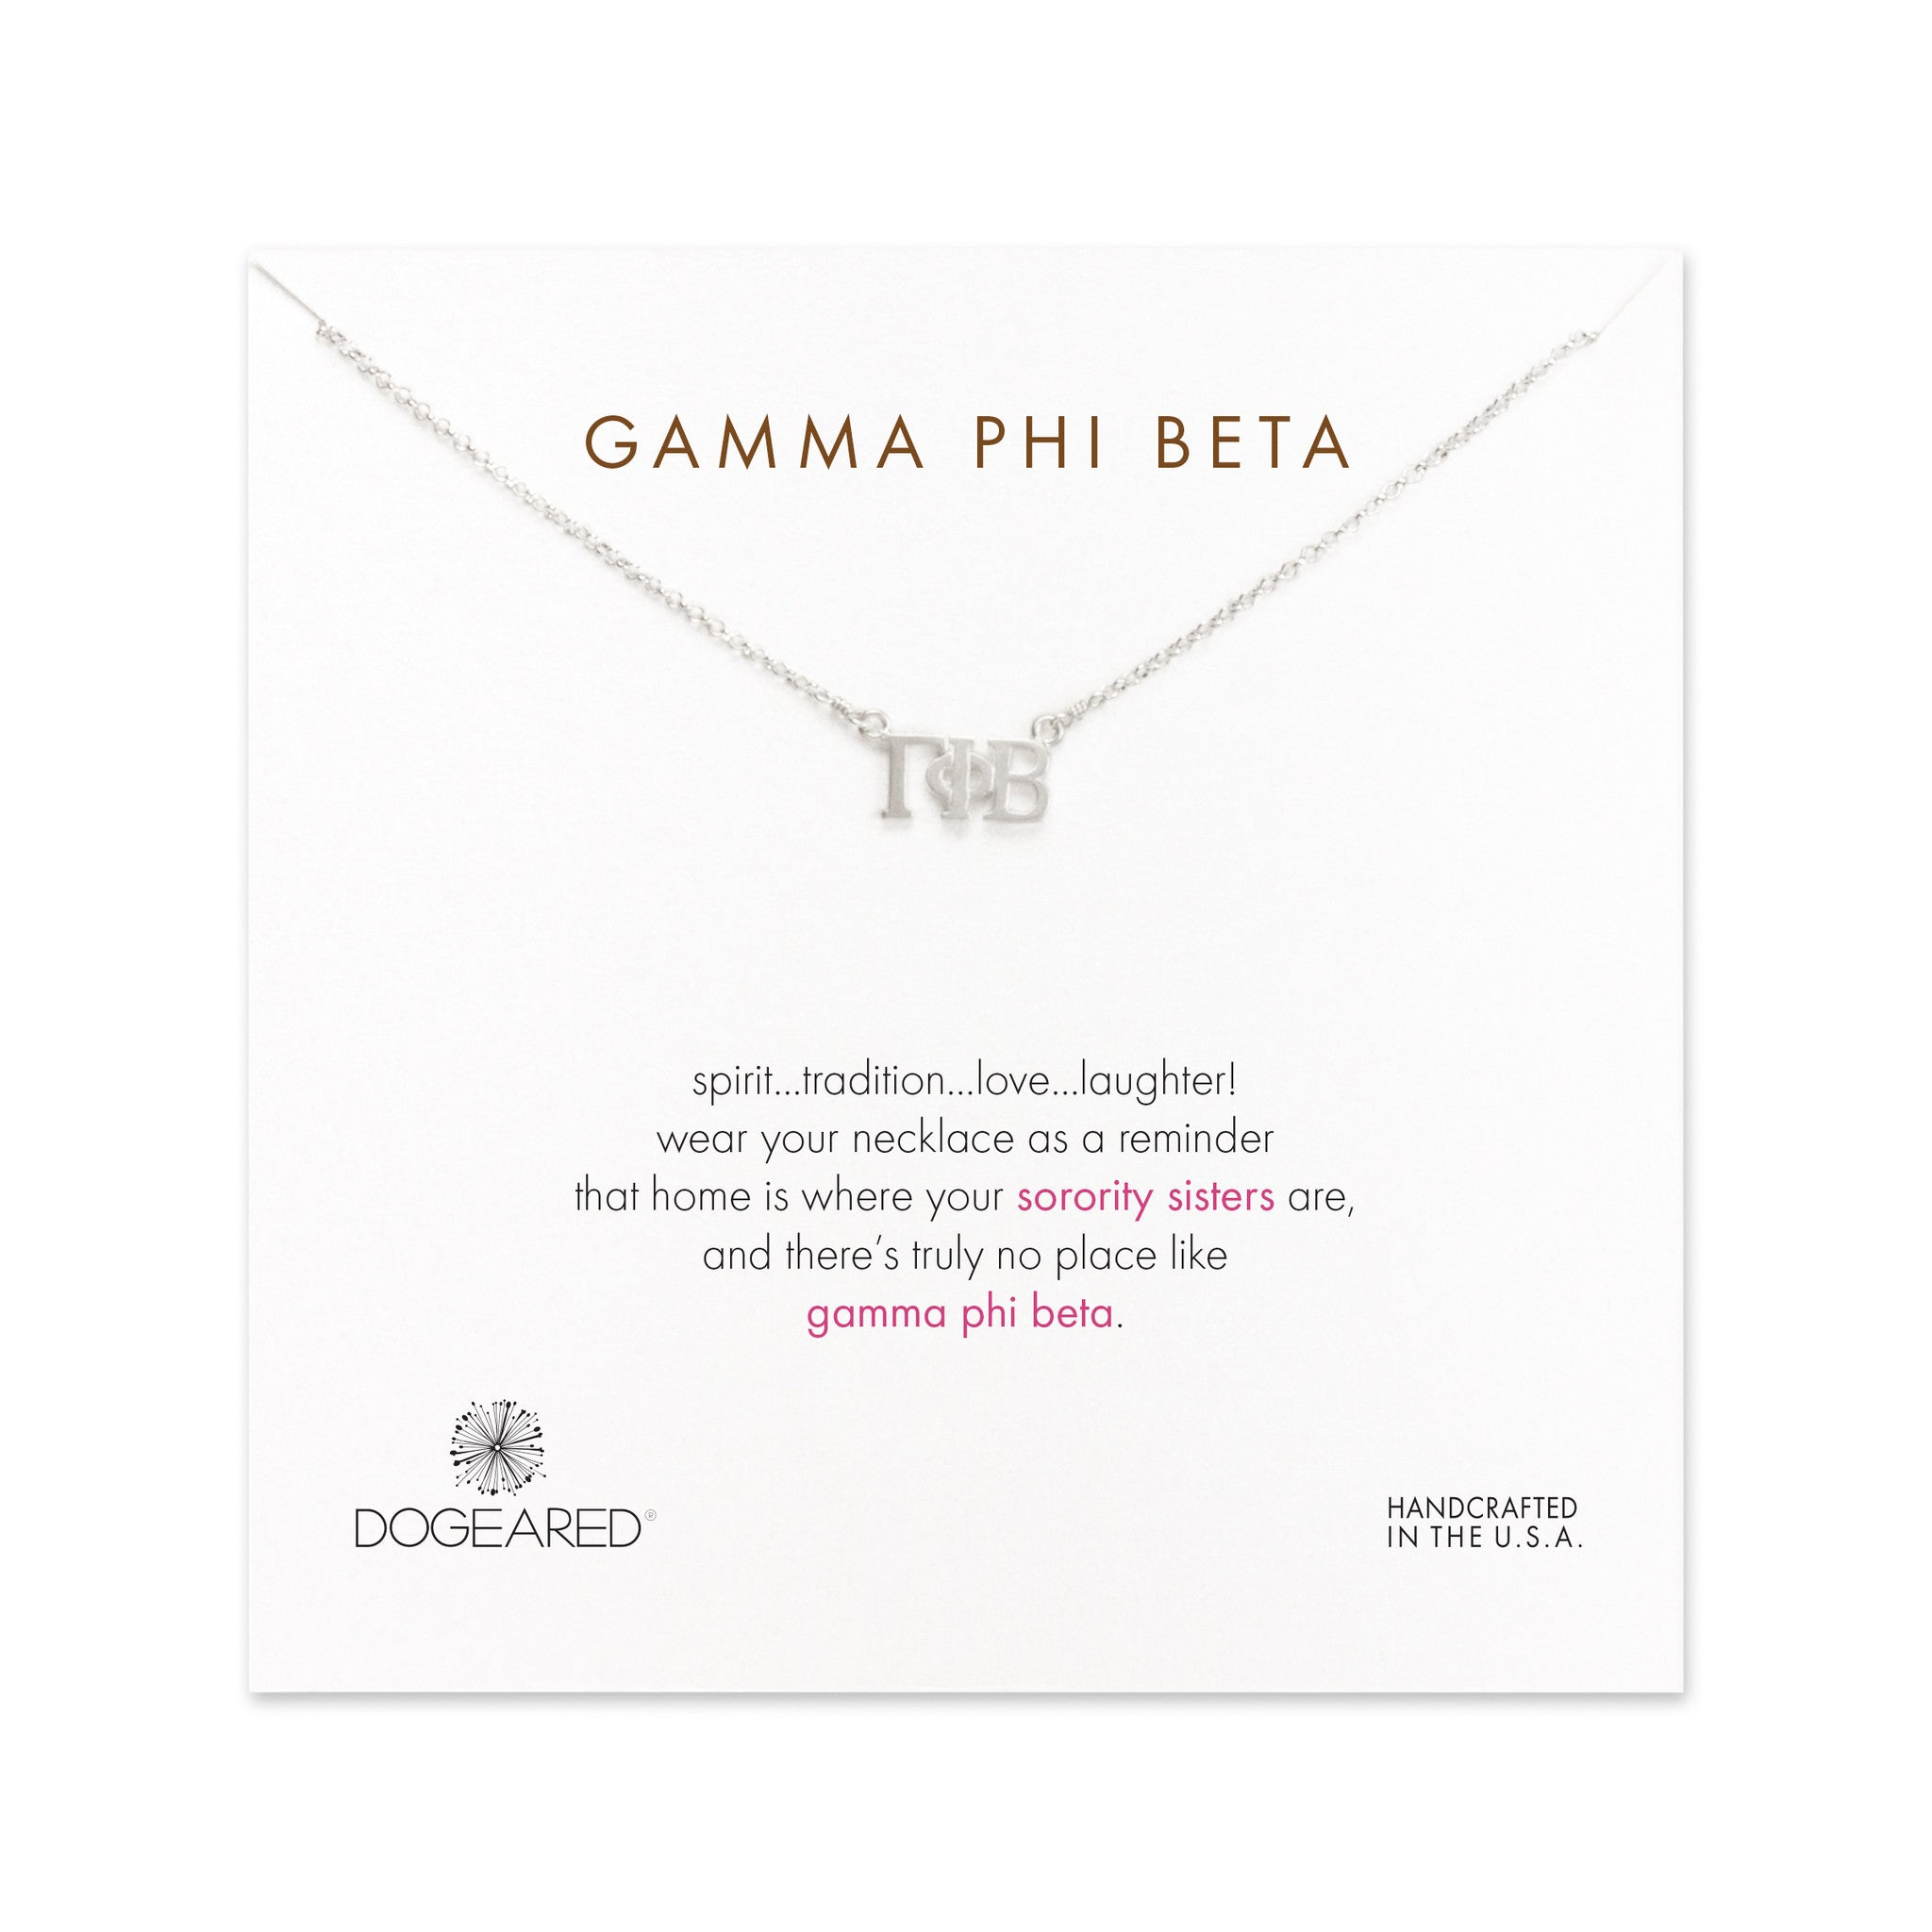 dogeared silver letter necklace gamma phi beta